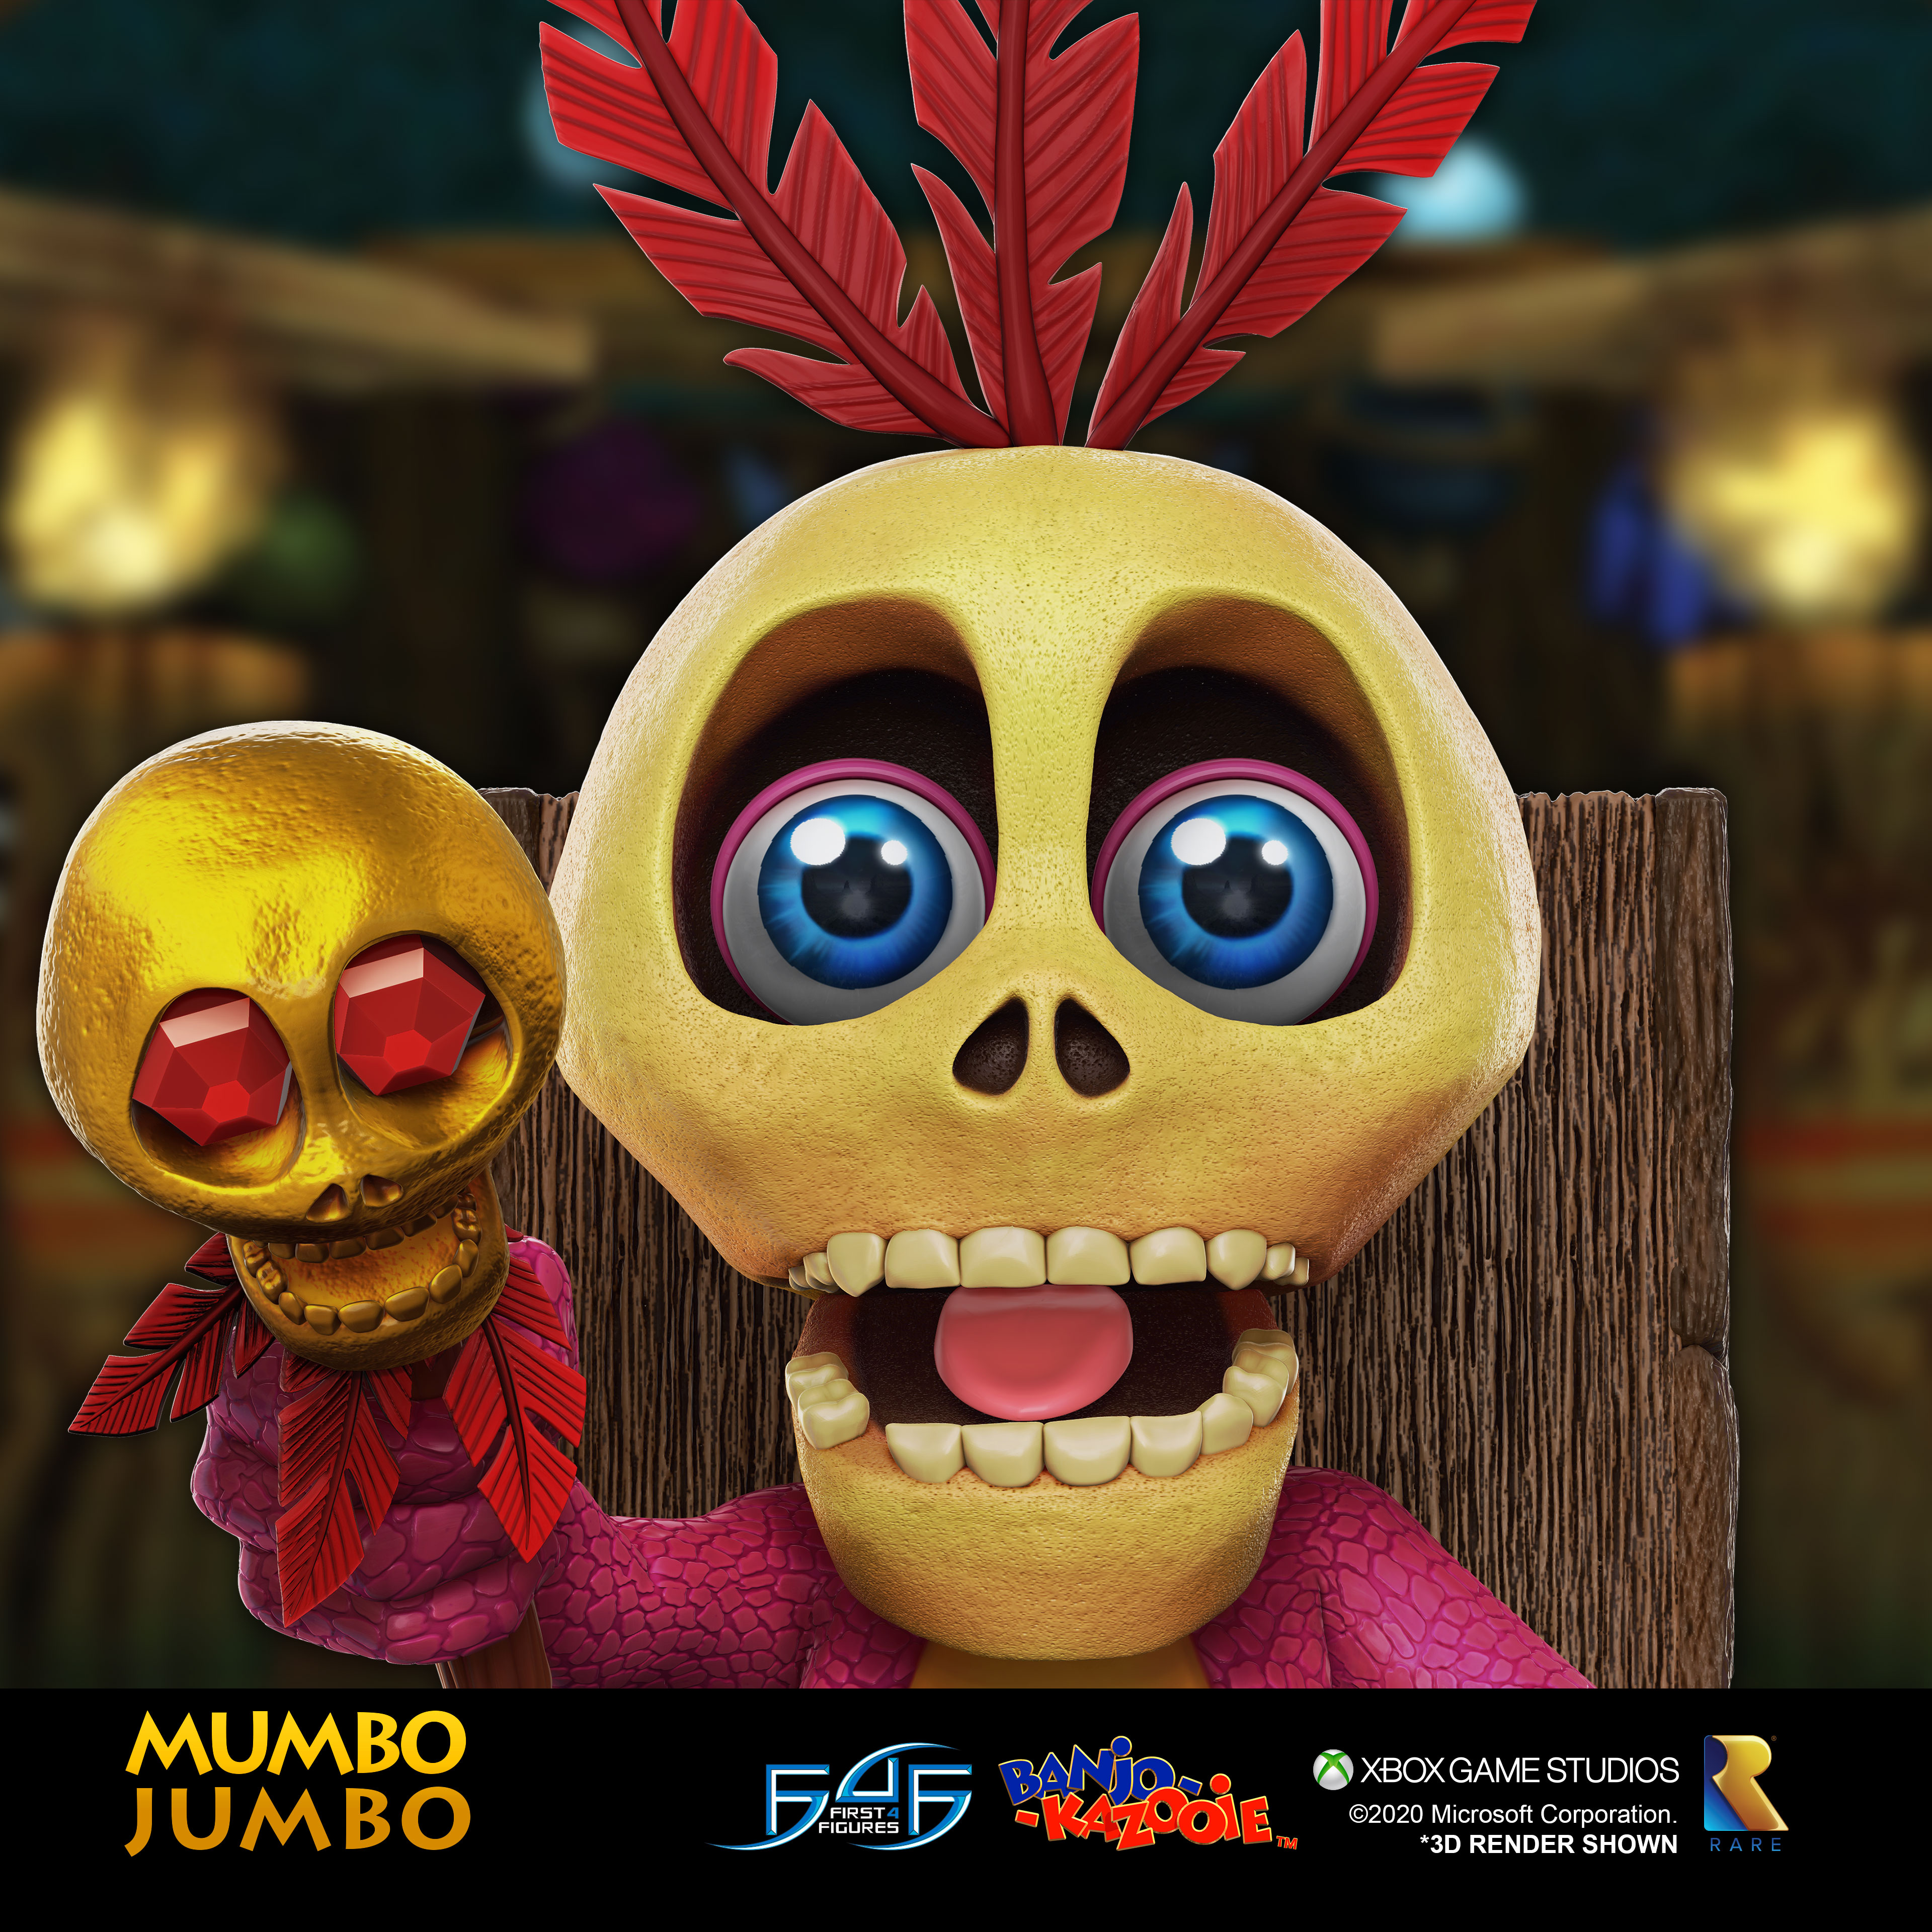 A first look at First 4 Figures' Banjo-Kazooie™ – Mumbo Jumbo statue